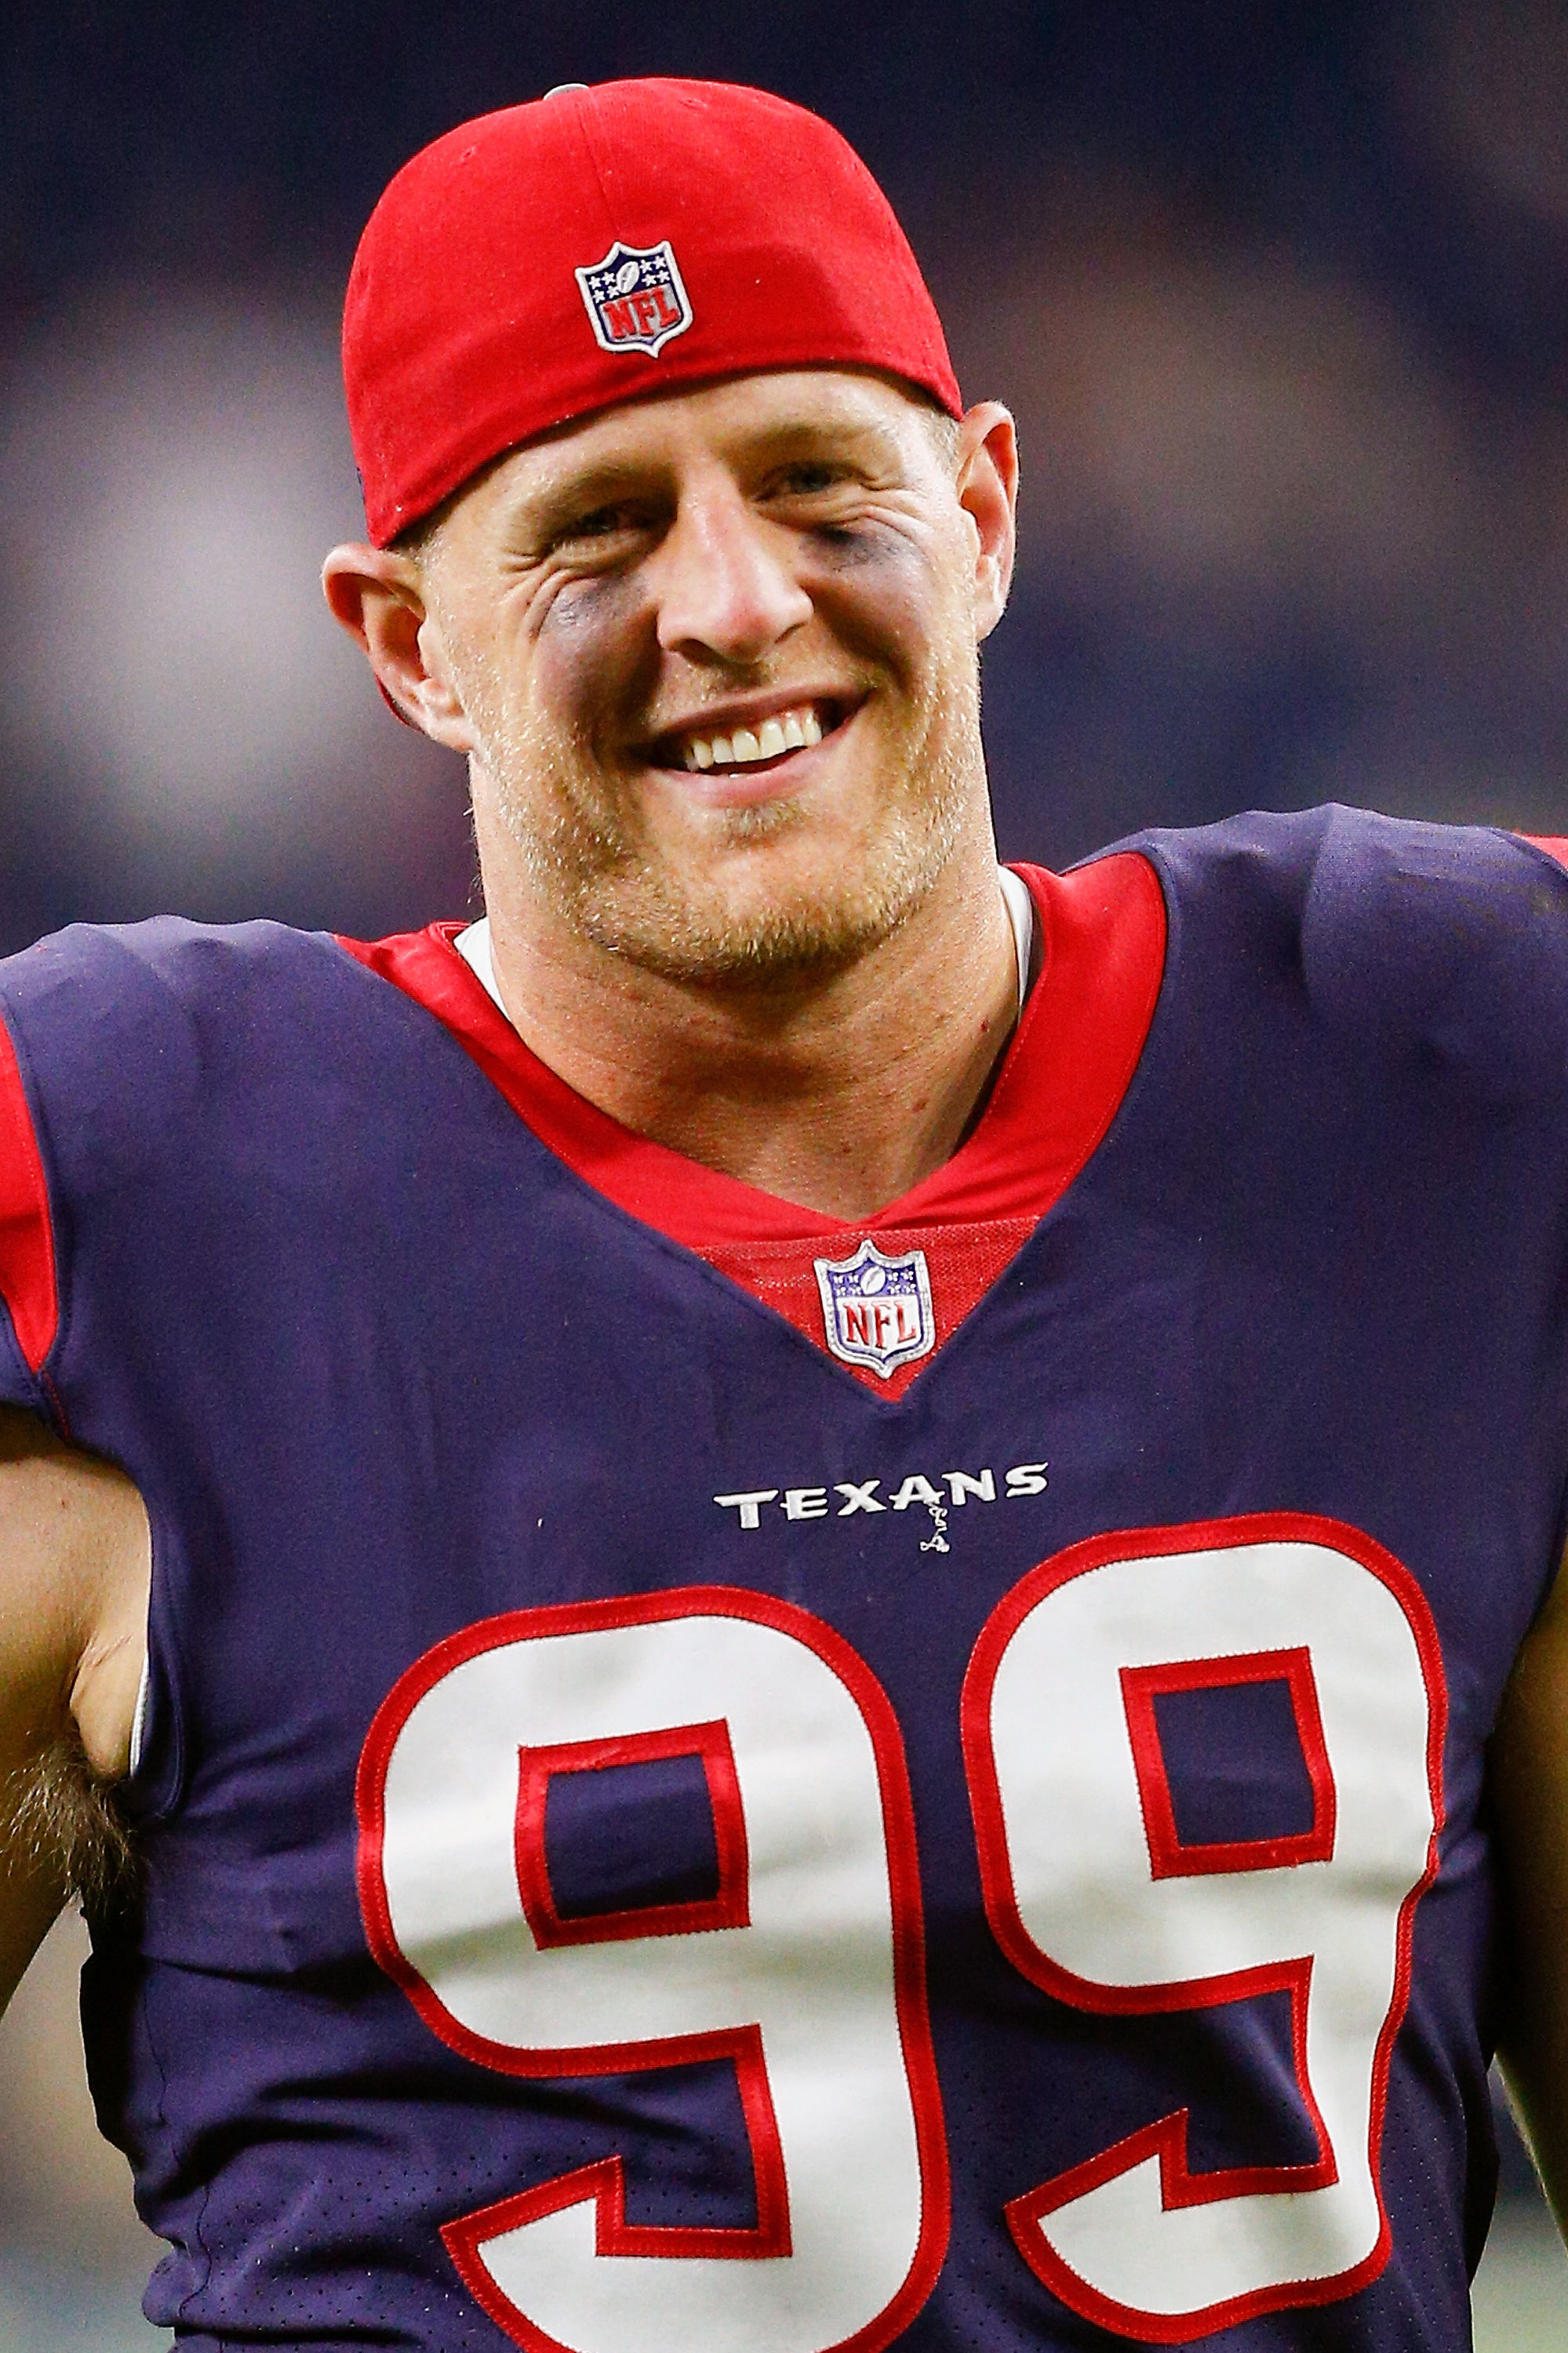 It Would Be Hard to Find a Bigger JJ Watt Fan Than His 99-Year-Old Great Grandma